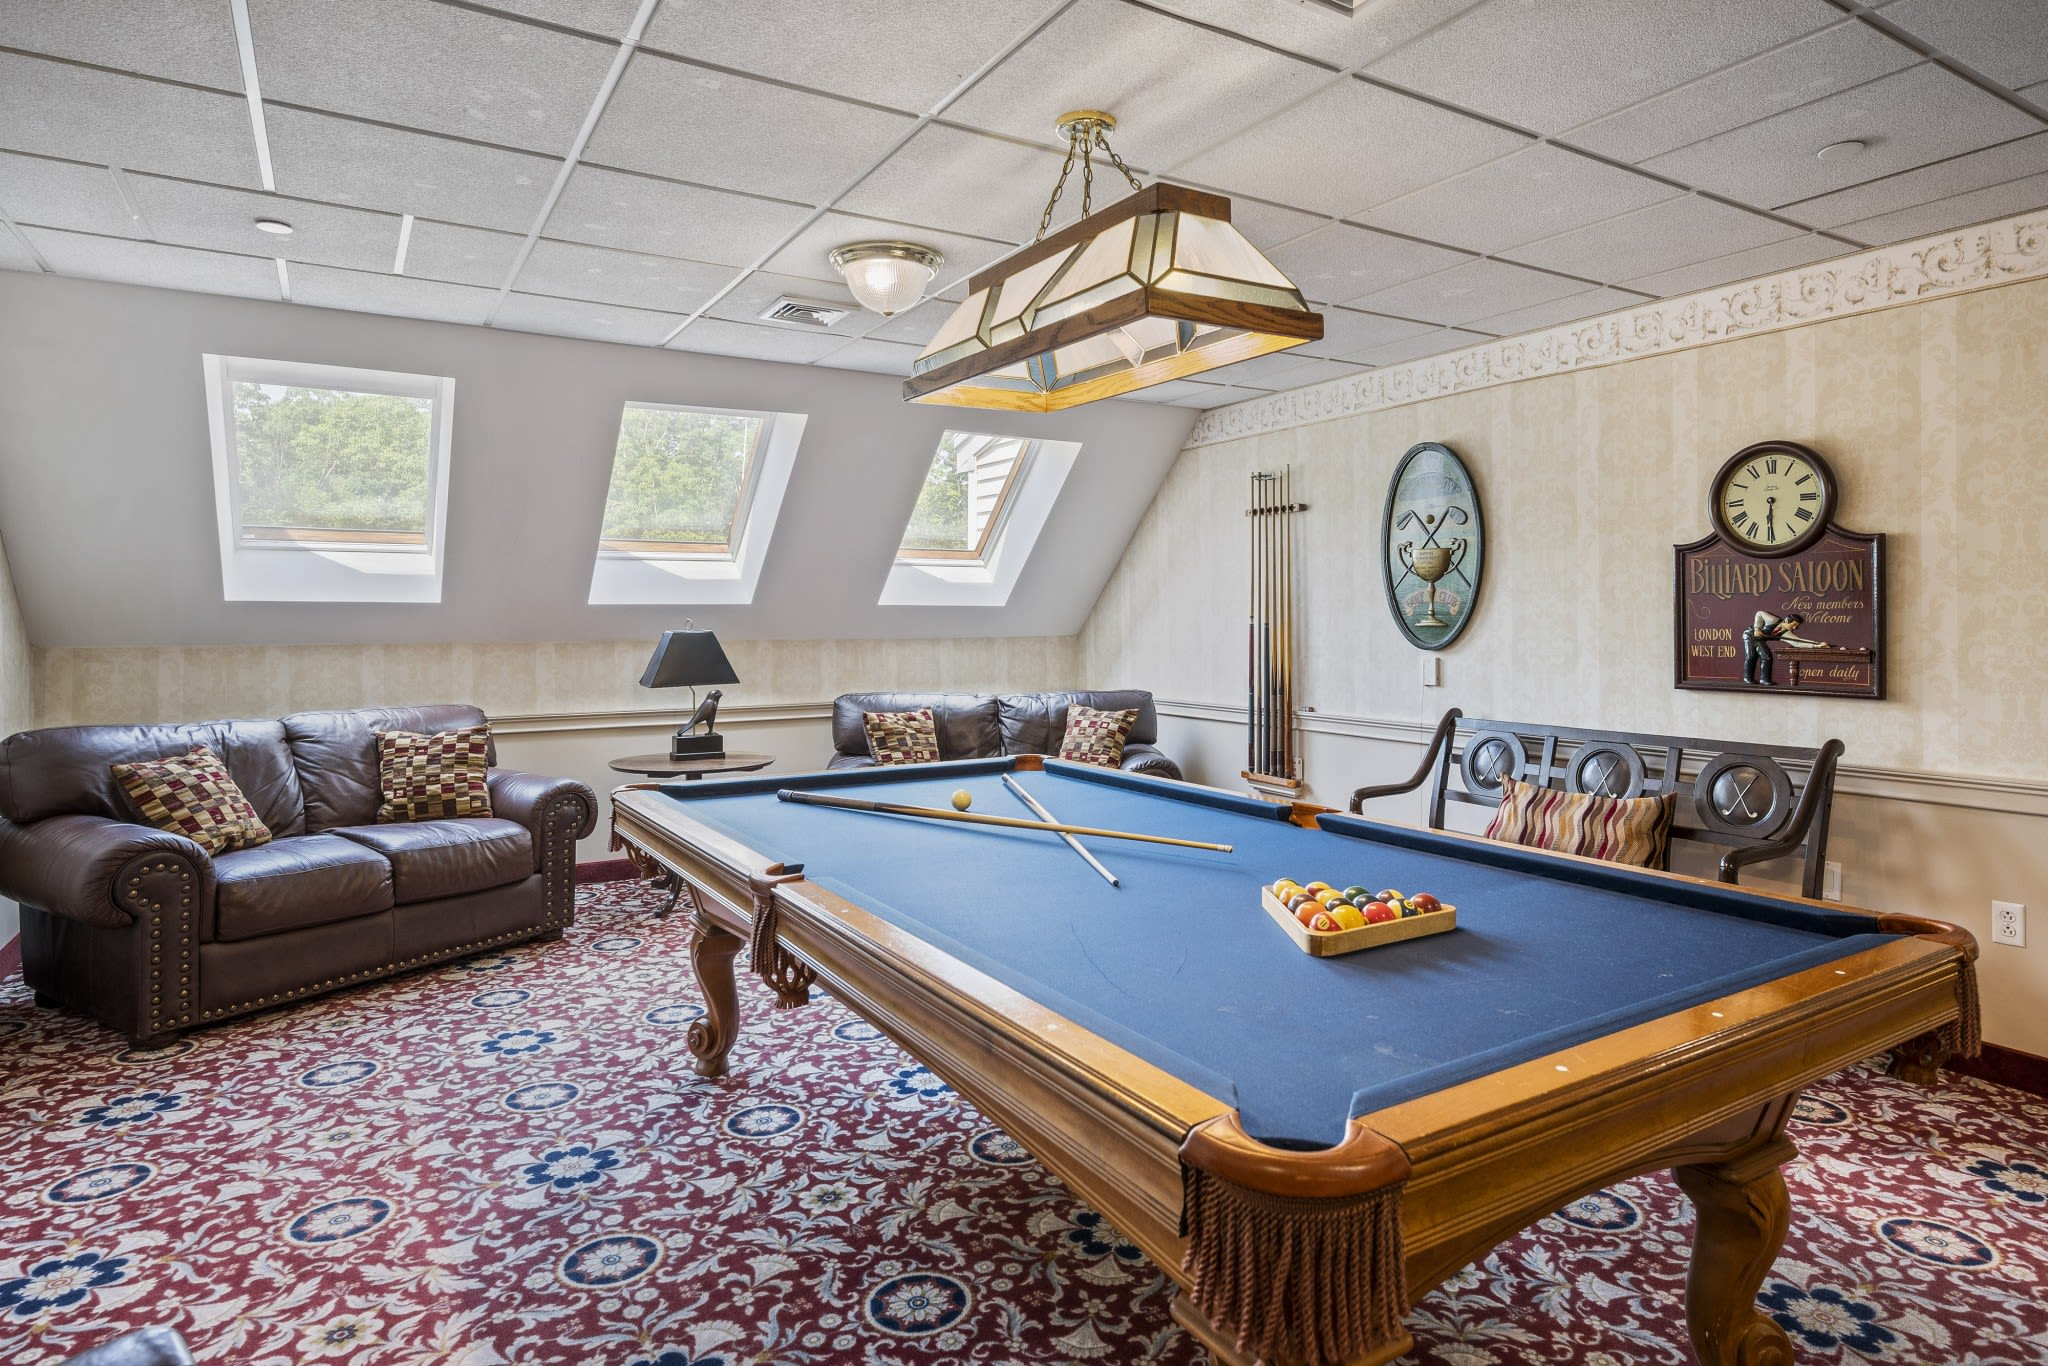 Billiards room at The Hearth at Gardenside in Branford, Connecticut